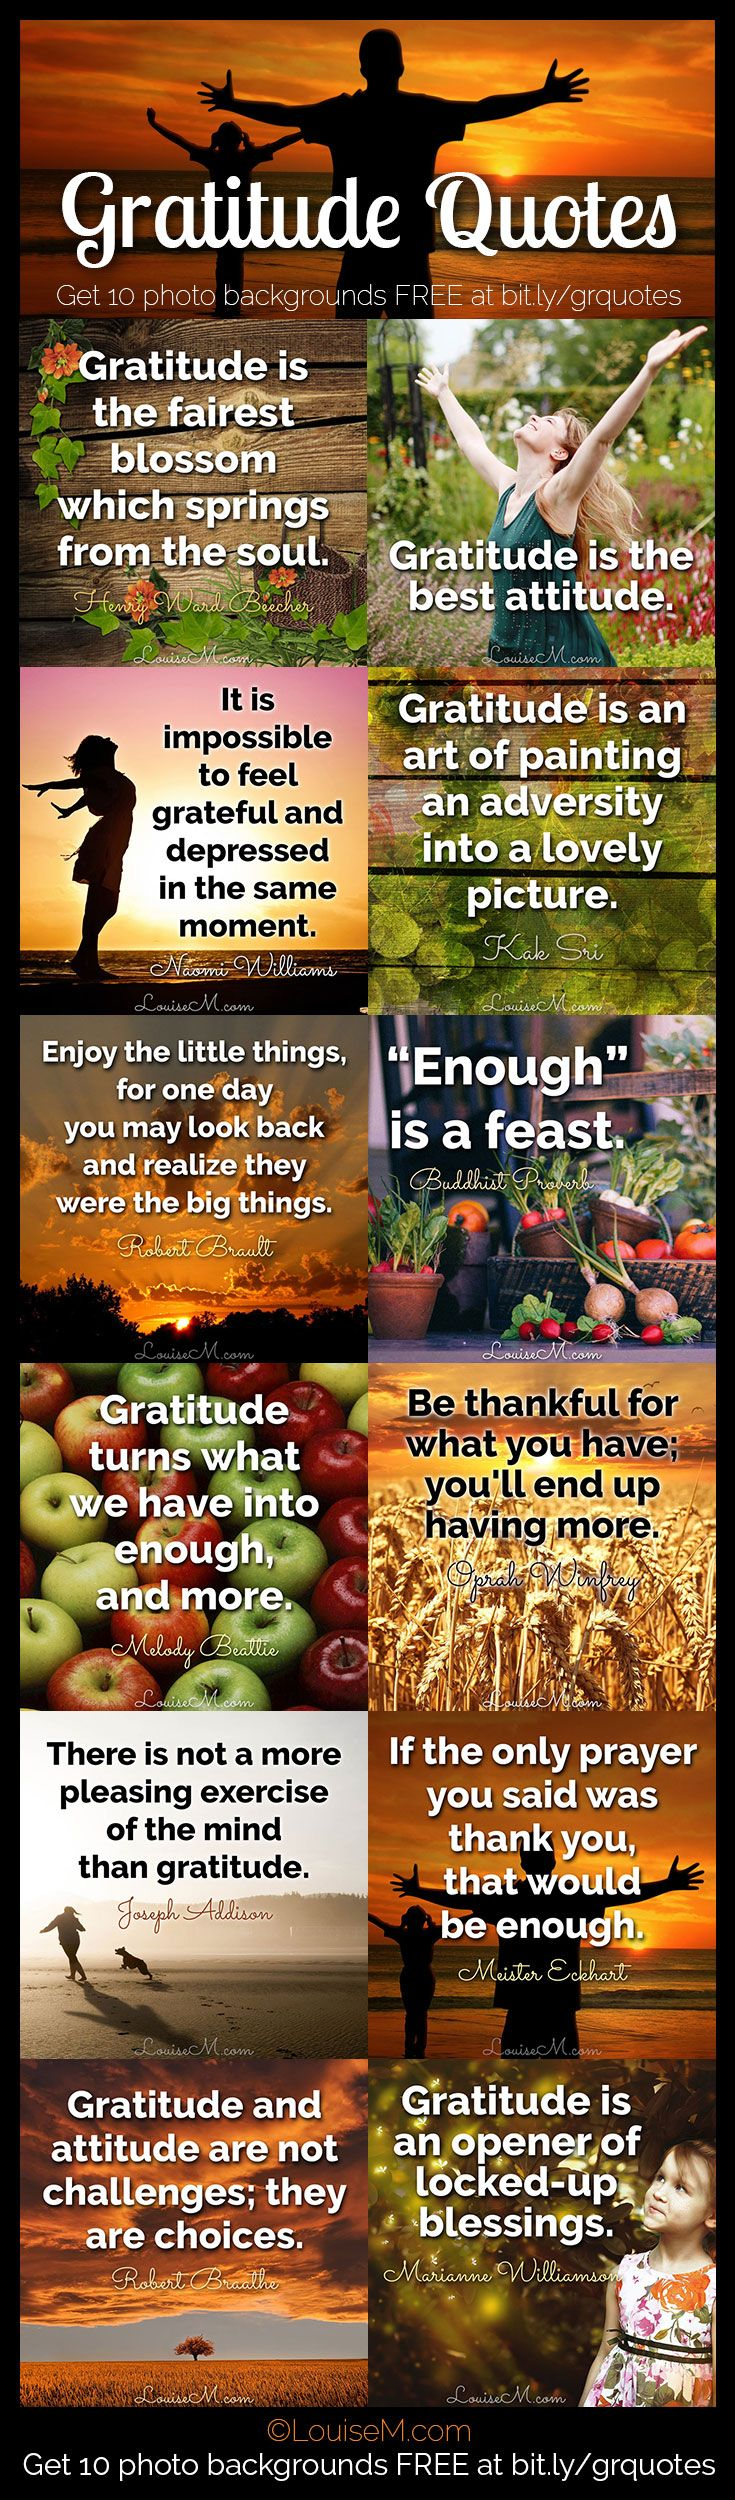 Find 30 days of gratitude quotes, photos, and more to help you adopt an attitude of gratitude. FREE photo download to make your own inspirational graphics!